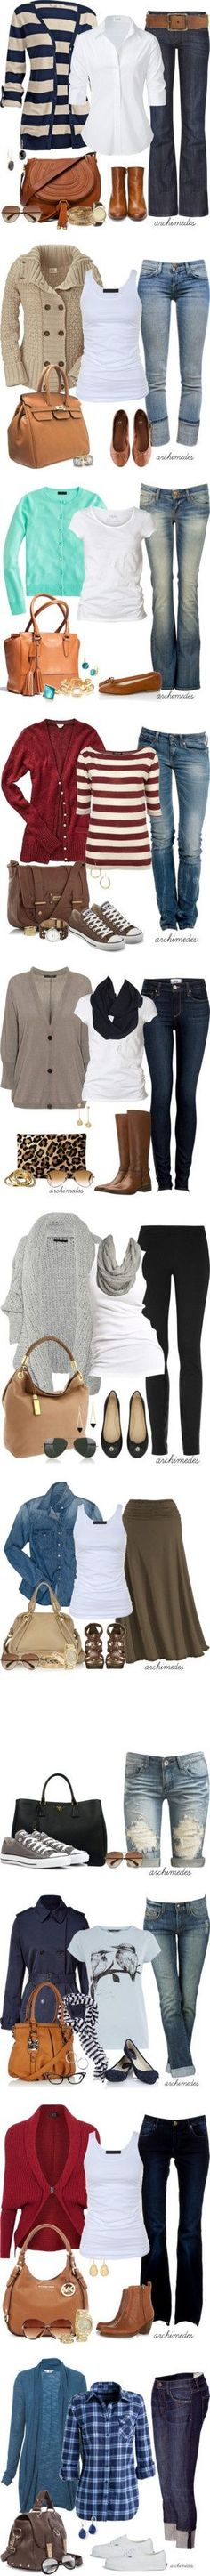 Cute layered ideas